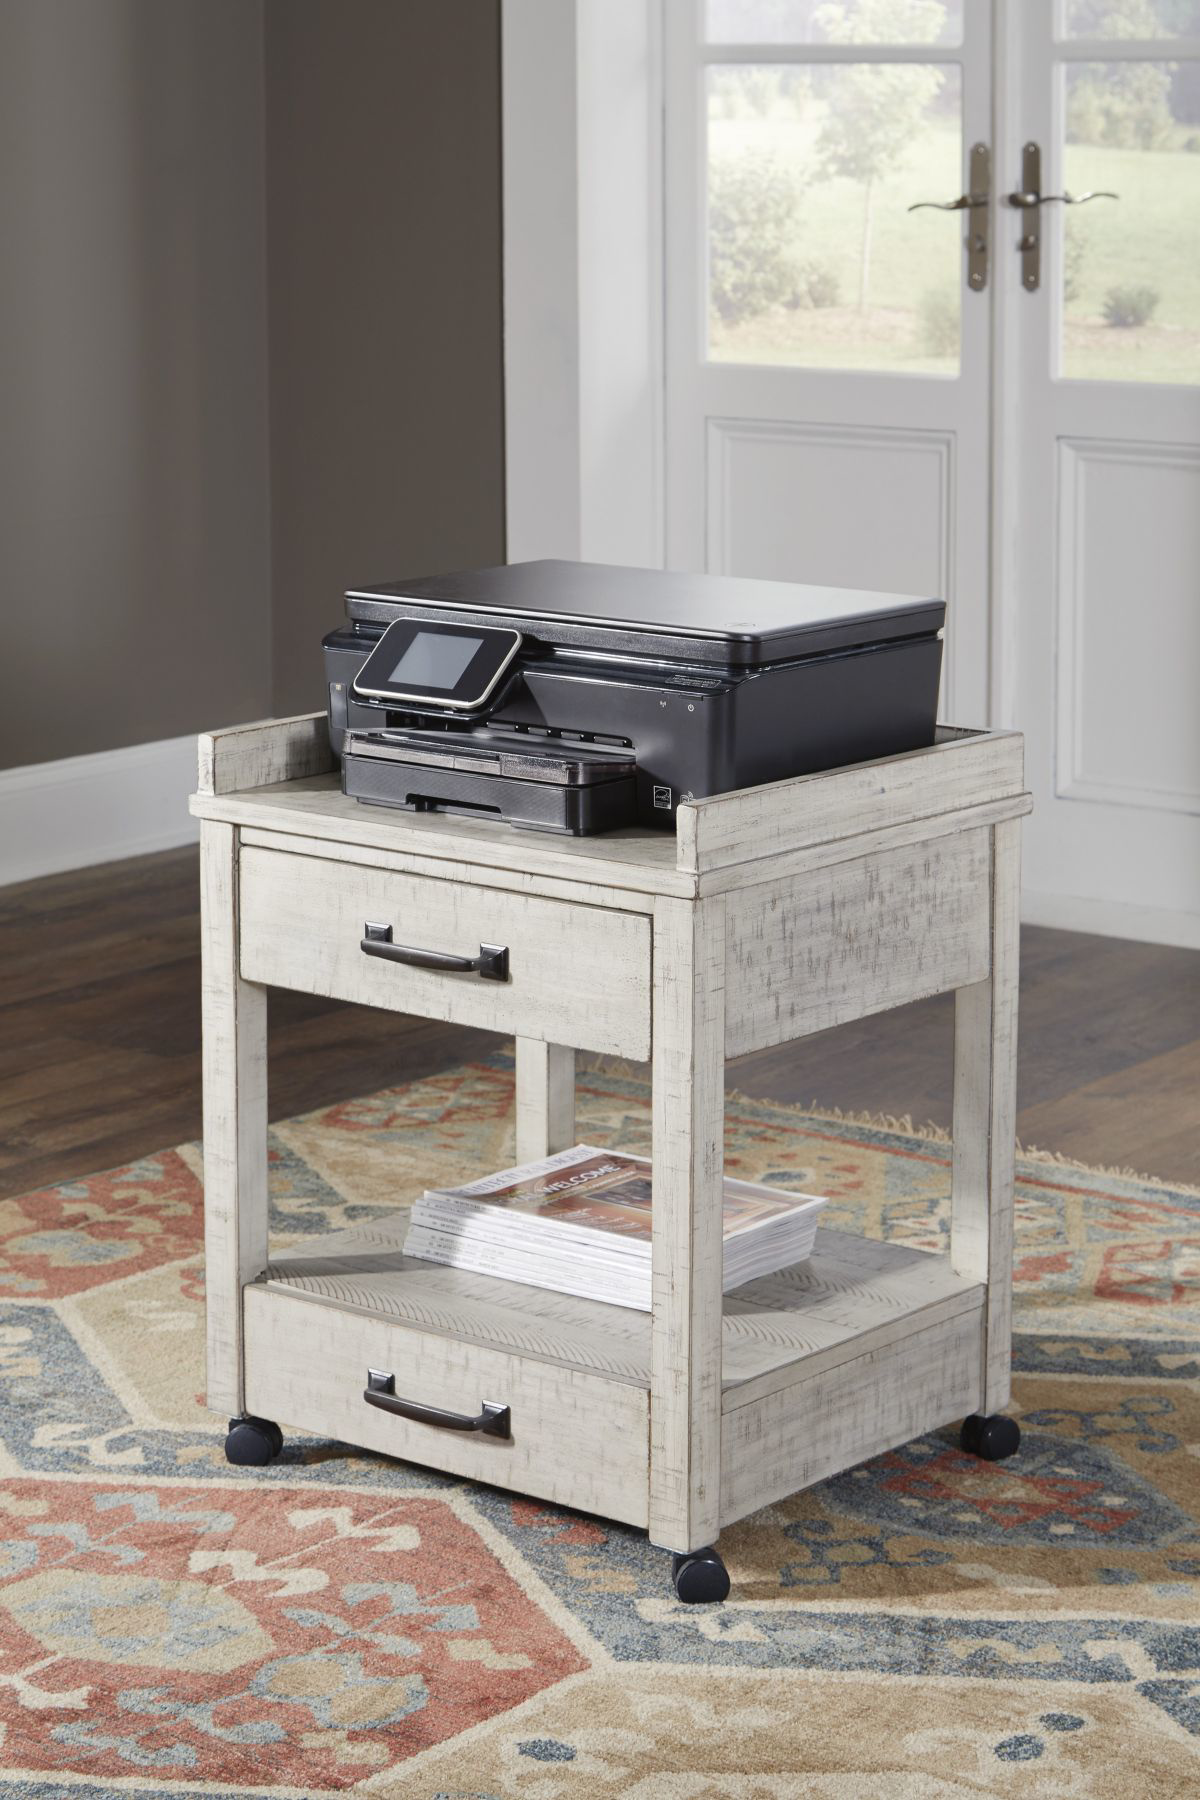 Picture of Carynhurst Printer Stand